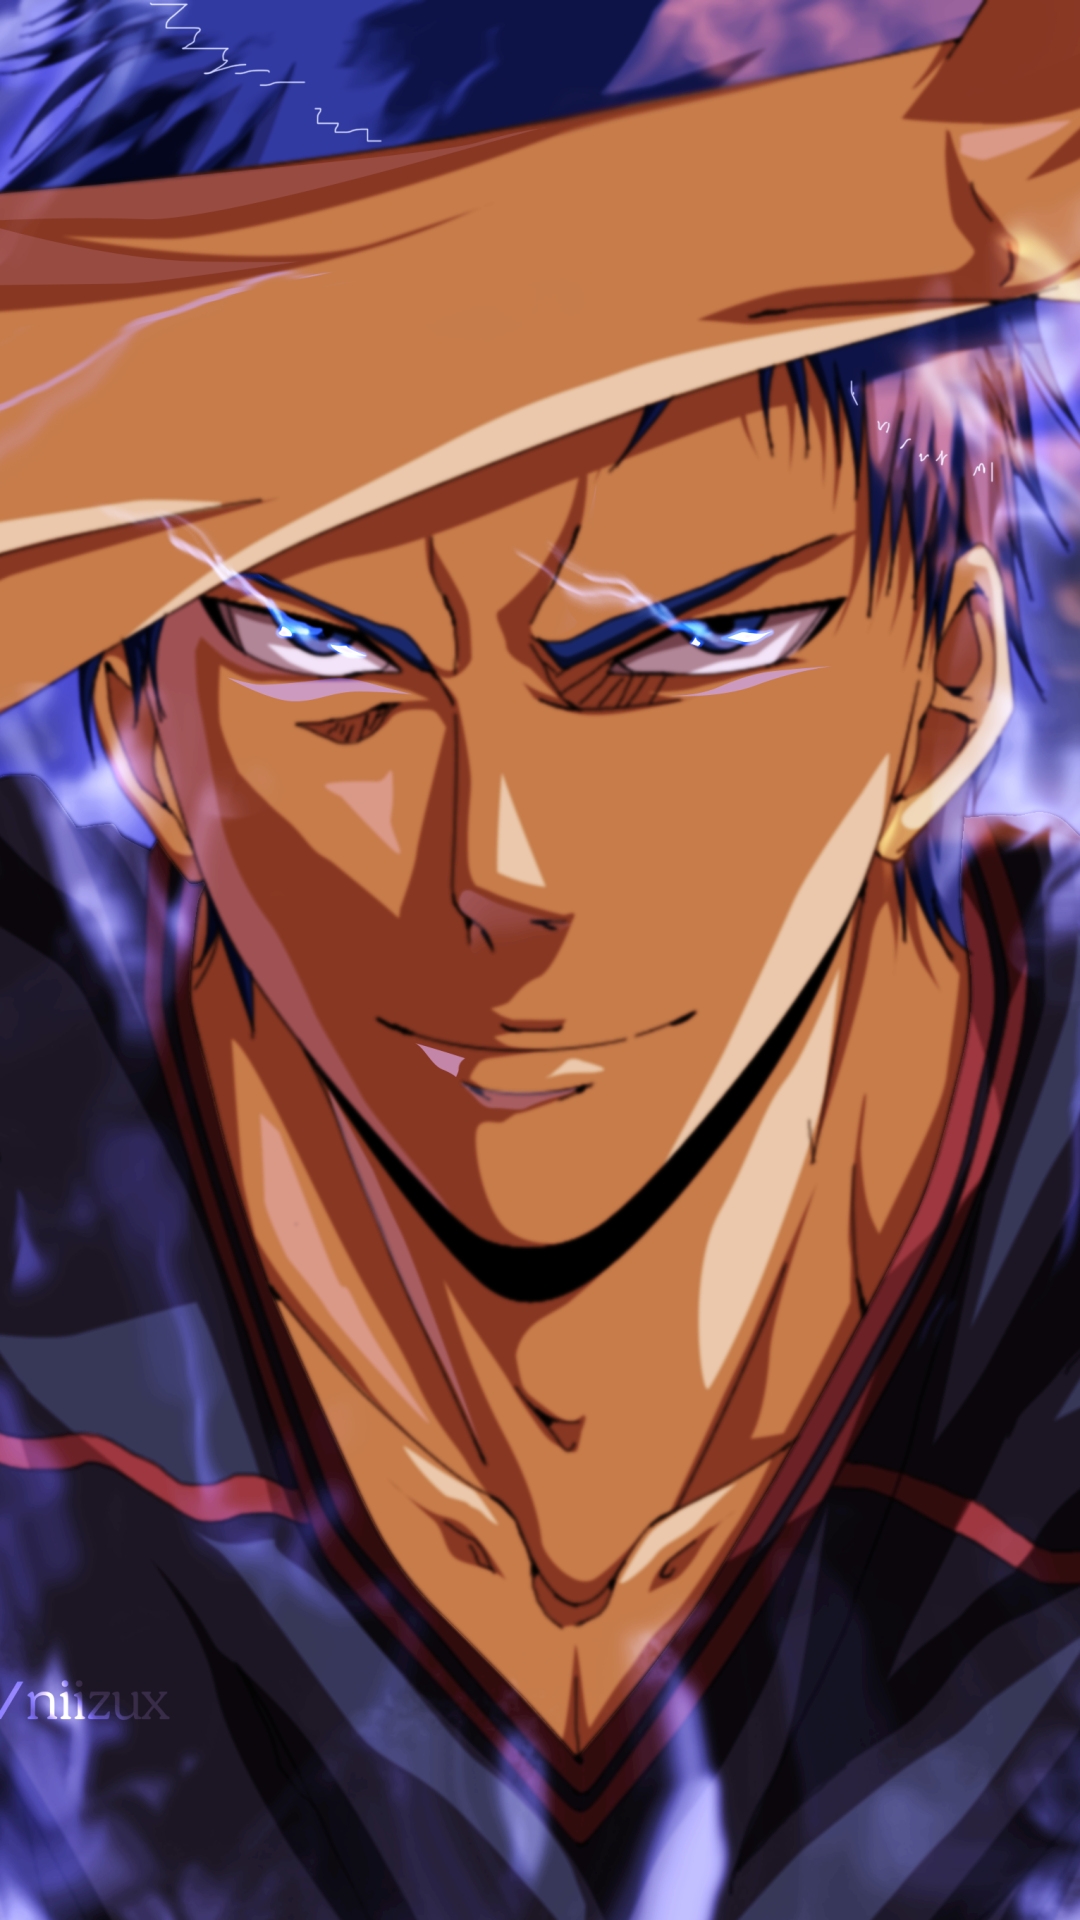 Check The Link In The Bio To Download Hd Wallpapers Of Kuroko No Basket And More Pc Phone Anime In 2020 Kuroko S Basketball Kuroko No Basket Bleach Anime Art